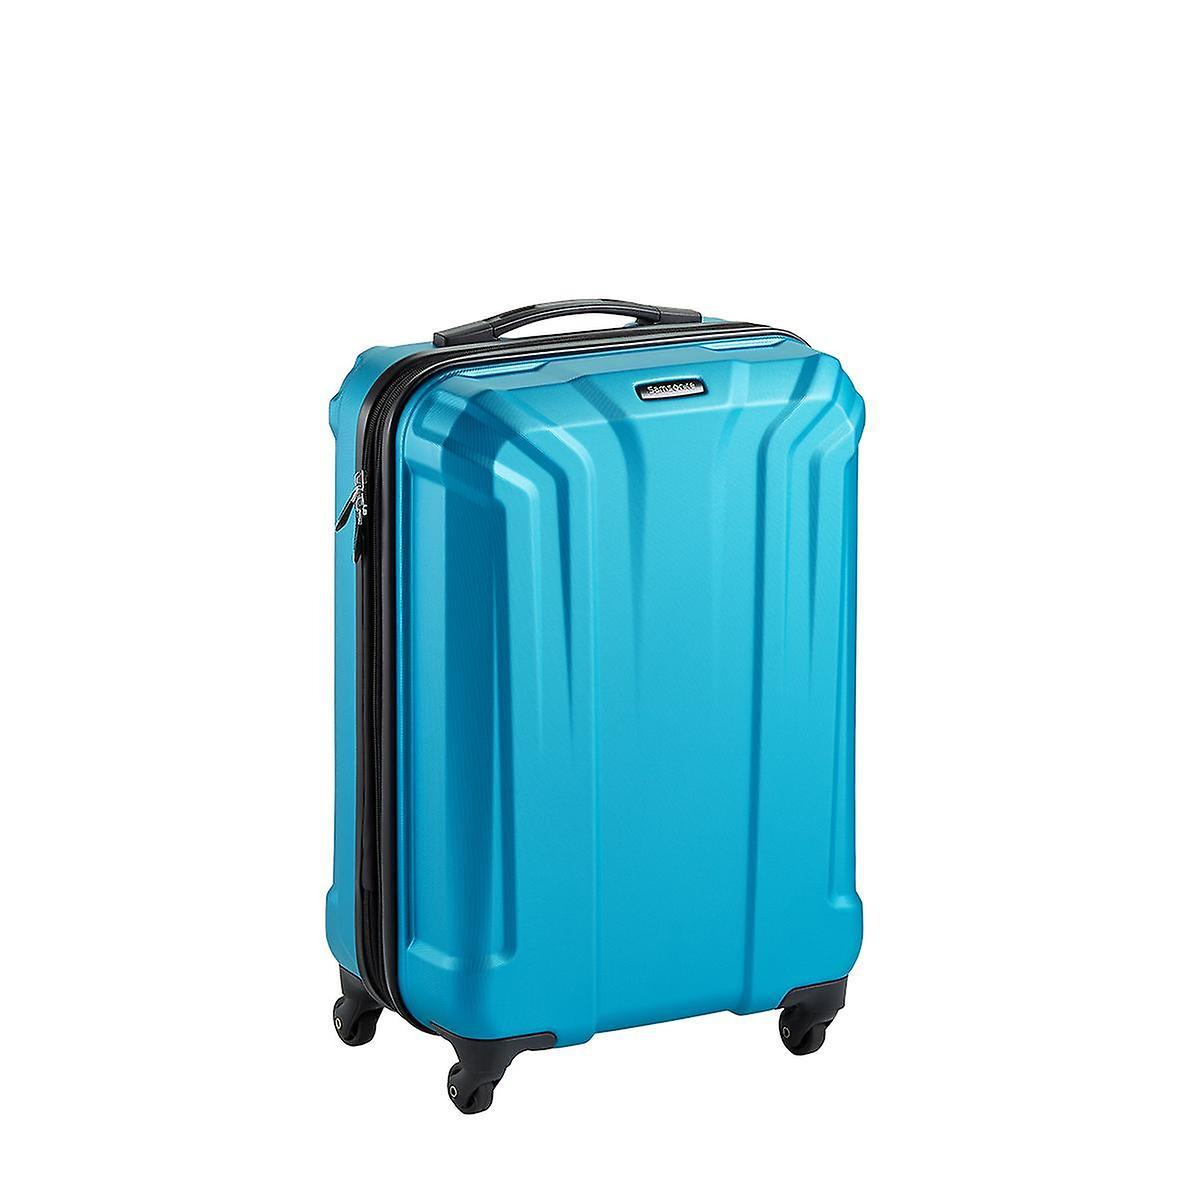 "Samsonite Electric Blue 22"" Opto Luggage Solution Starter Kit"